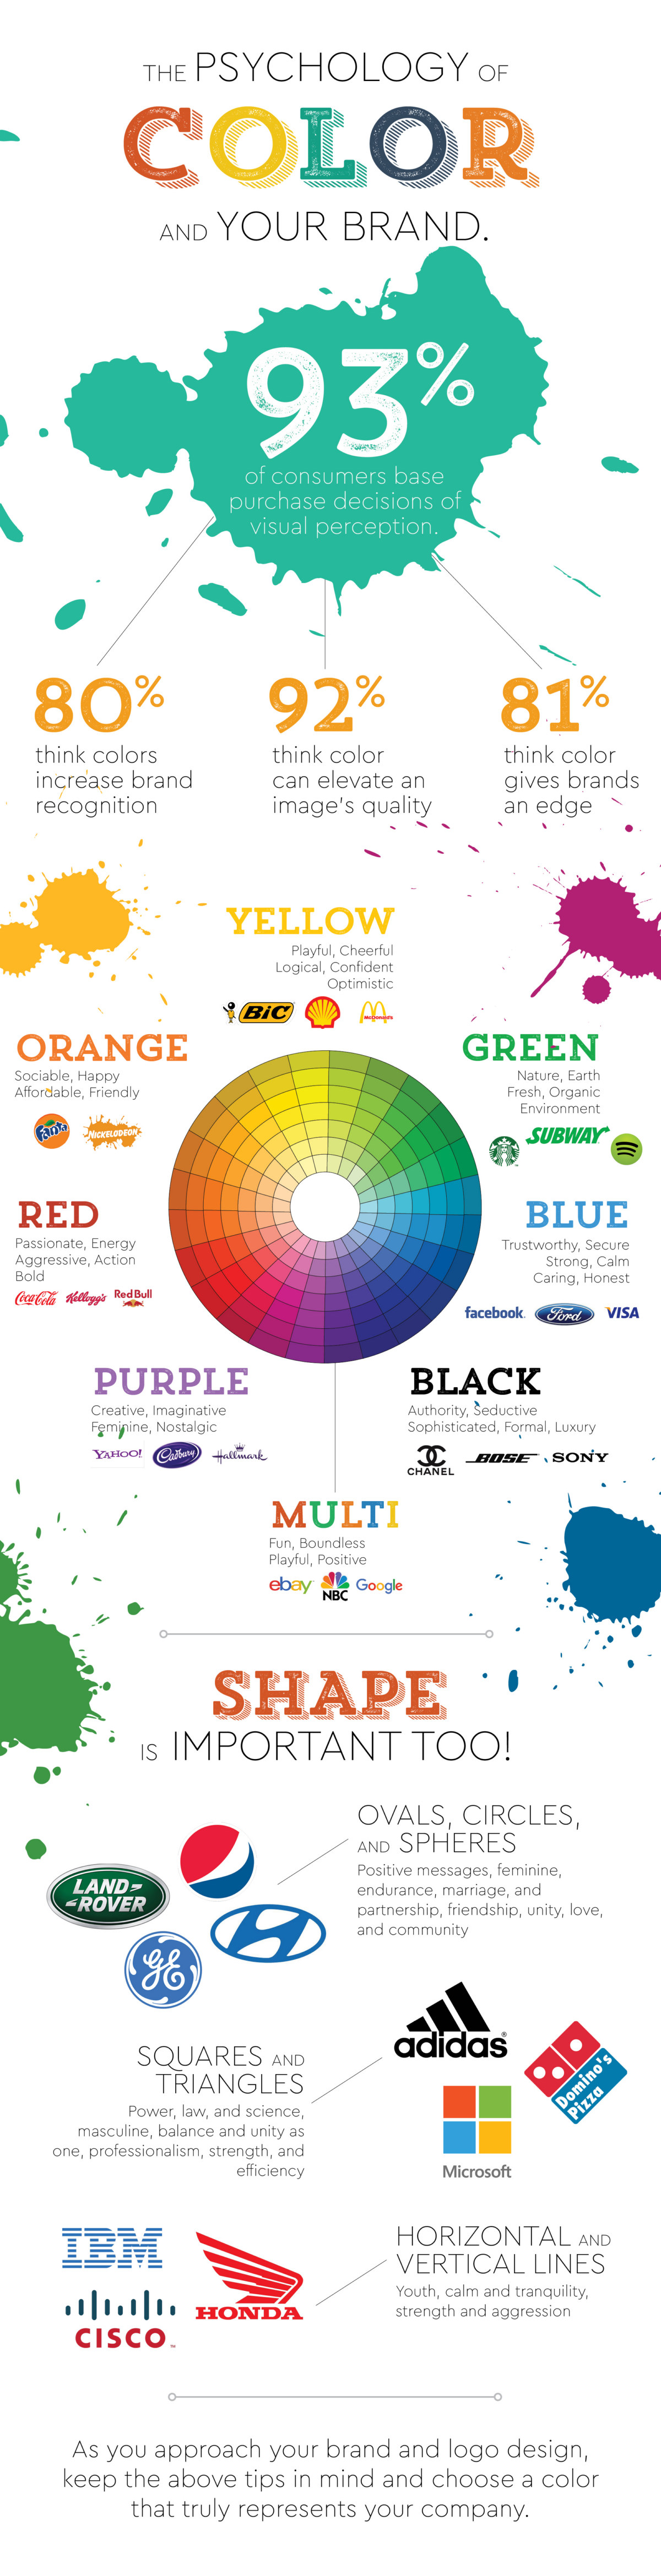 psychology-of-colors-in-logo-and-brand-design